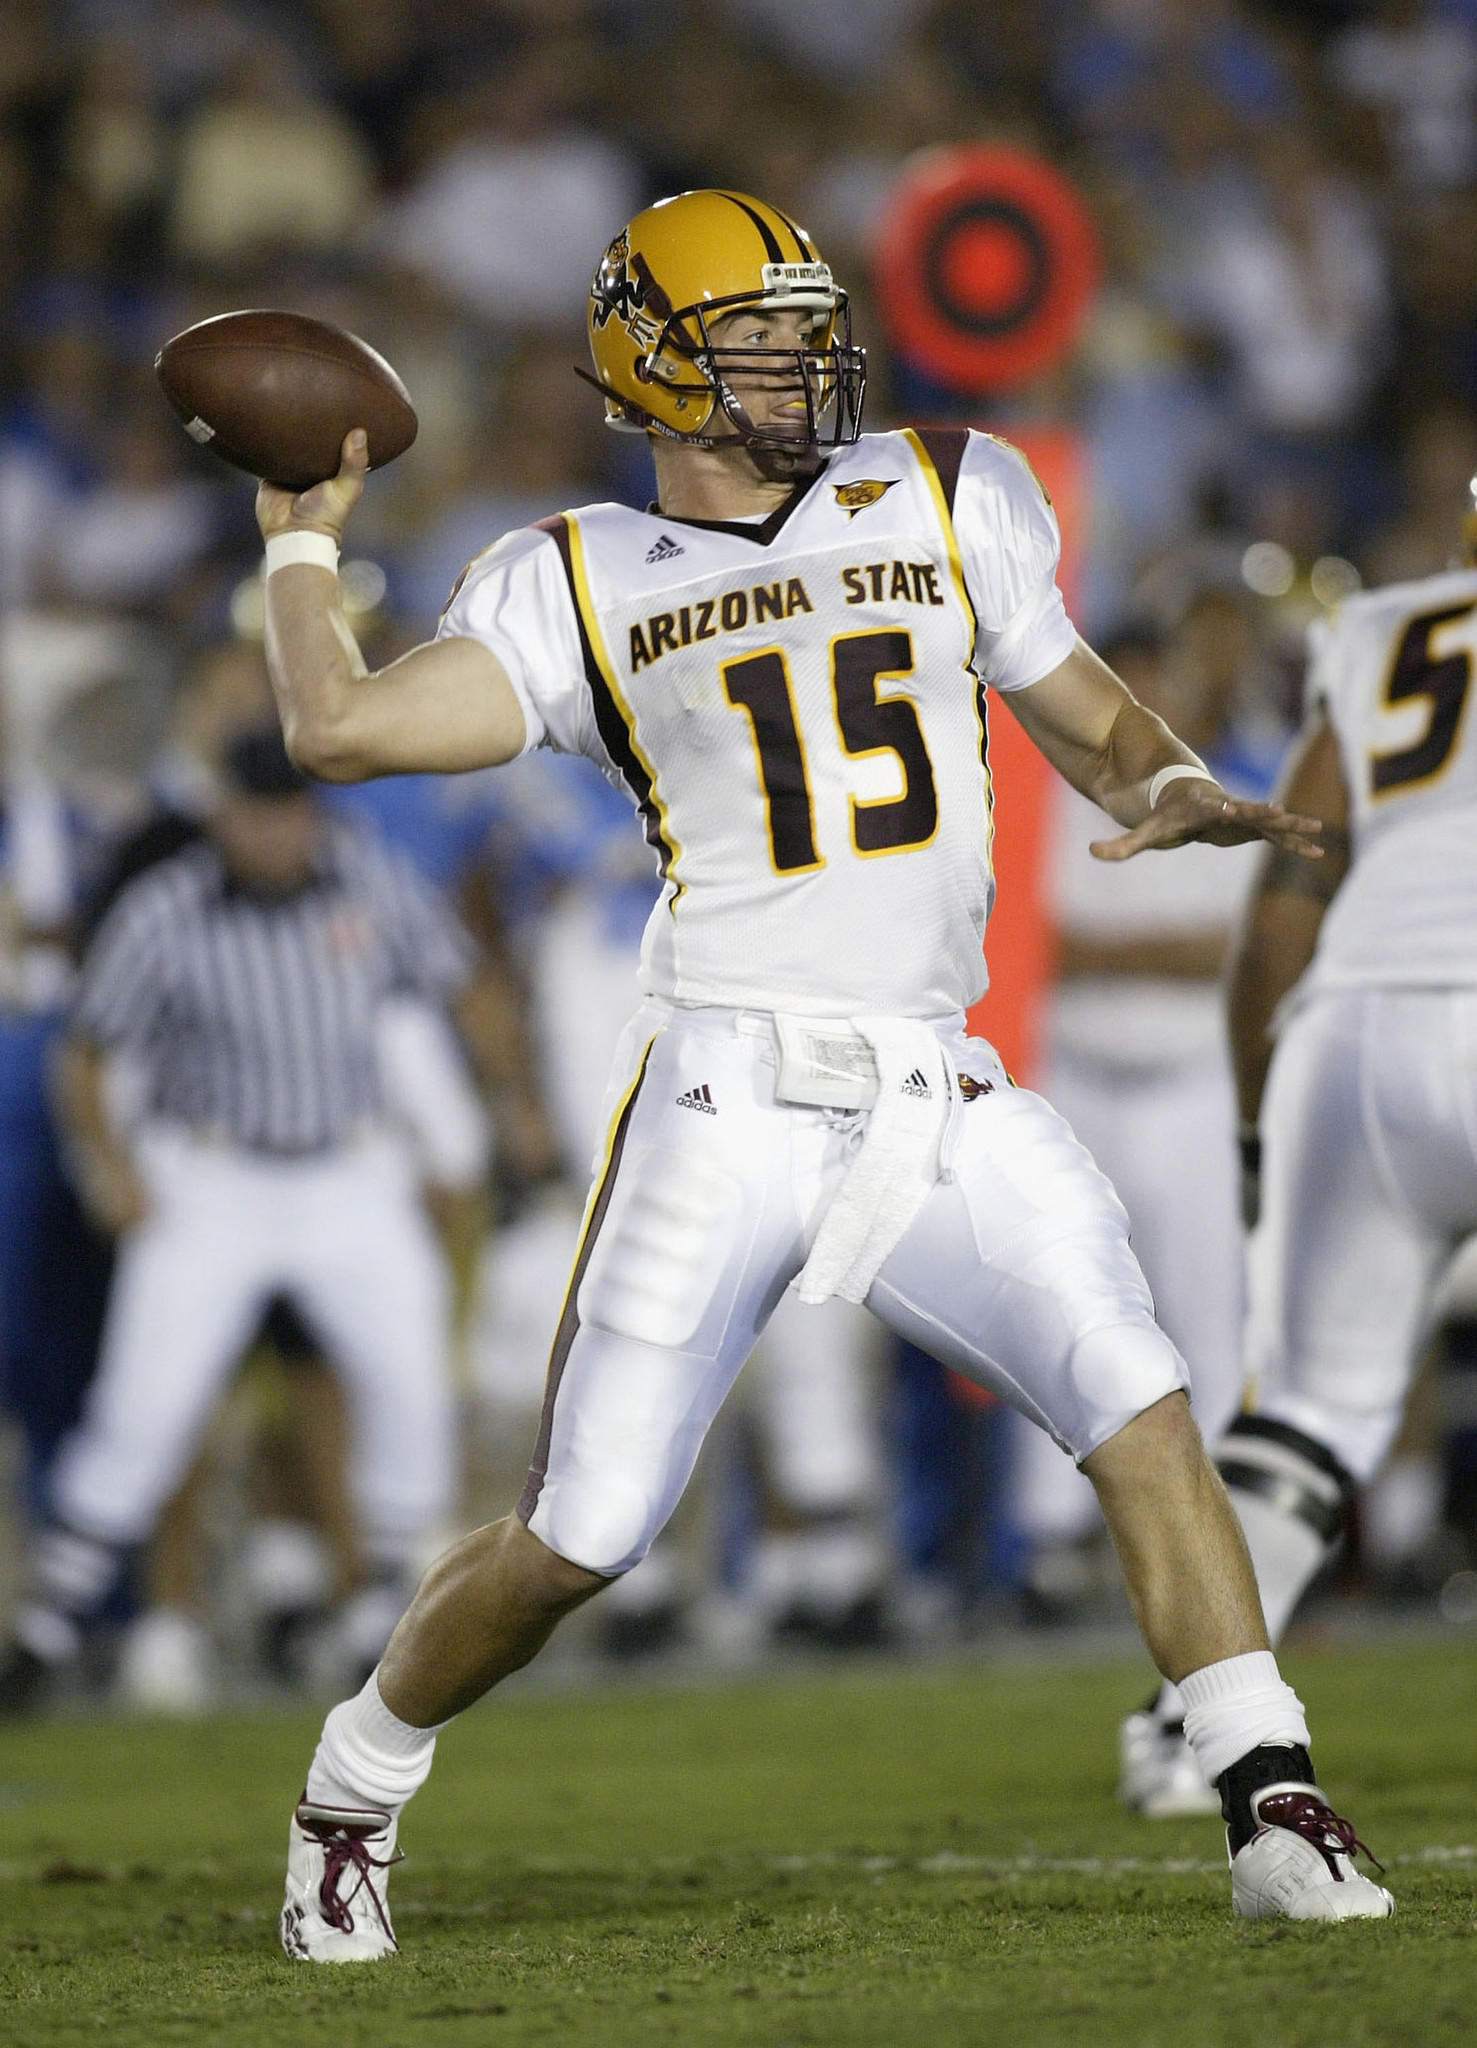 Quarterback Sam Keller of the Arizona State Sun Devils throws a pass against the UCLA Bruins on October 25, 2003.